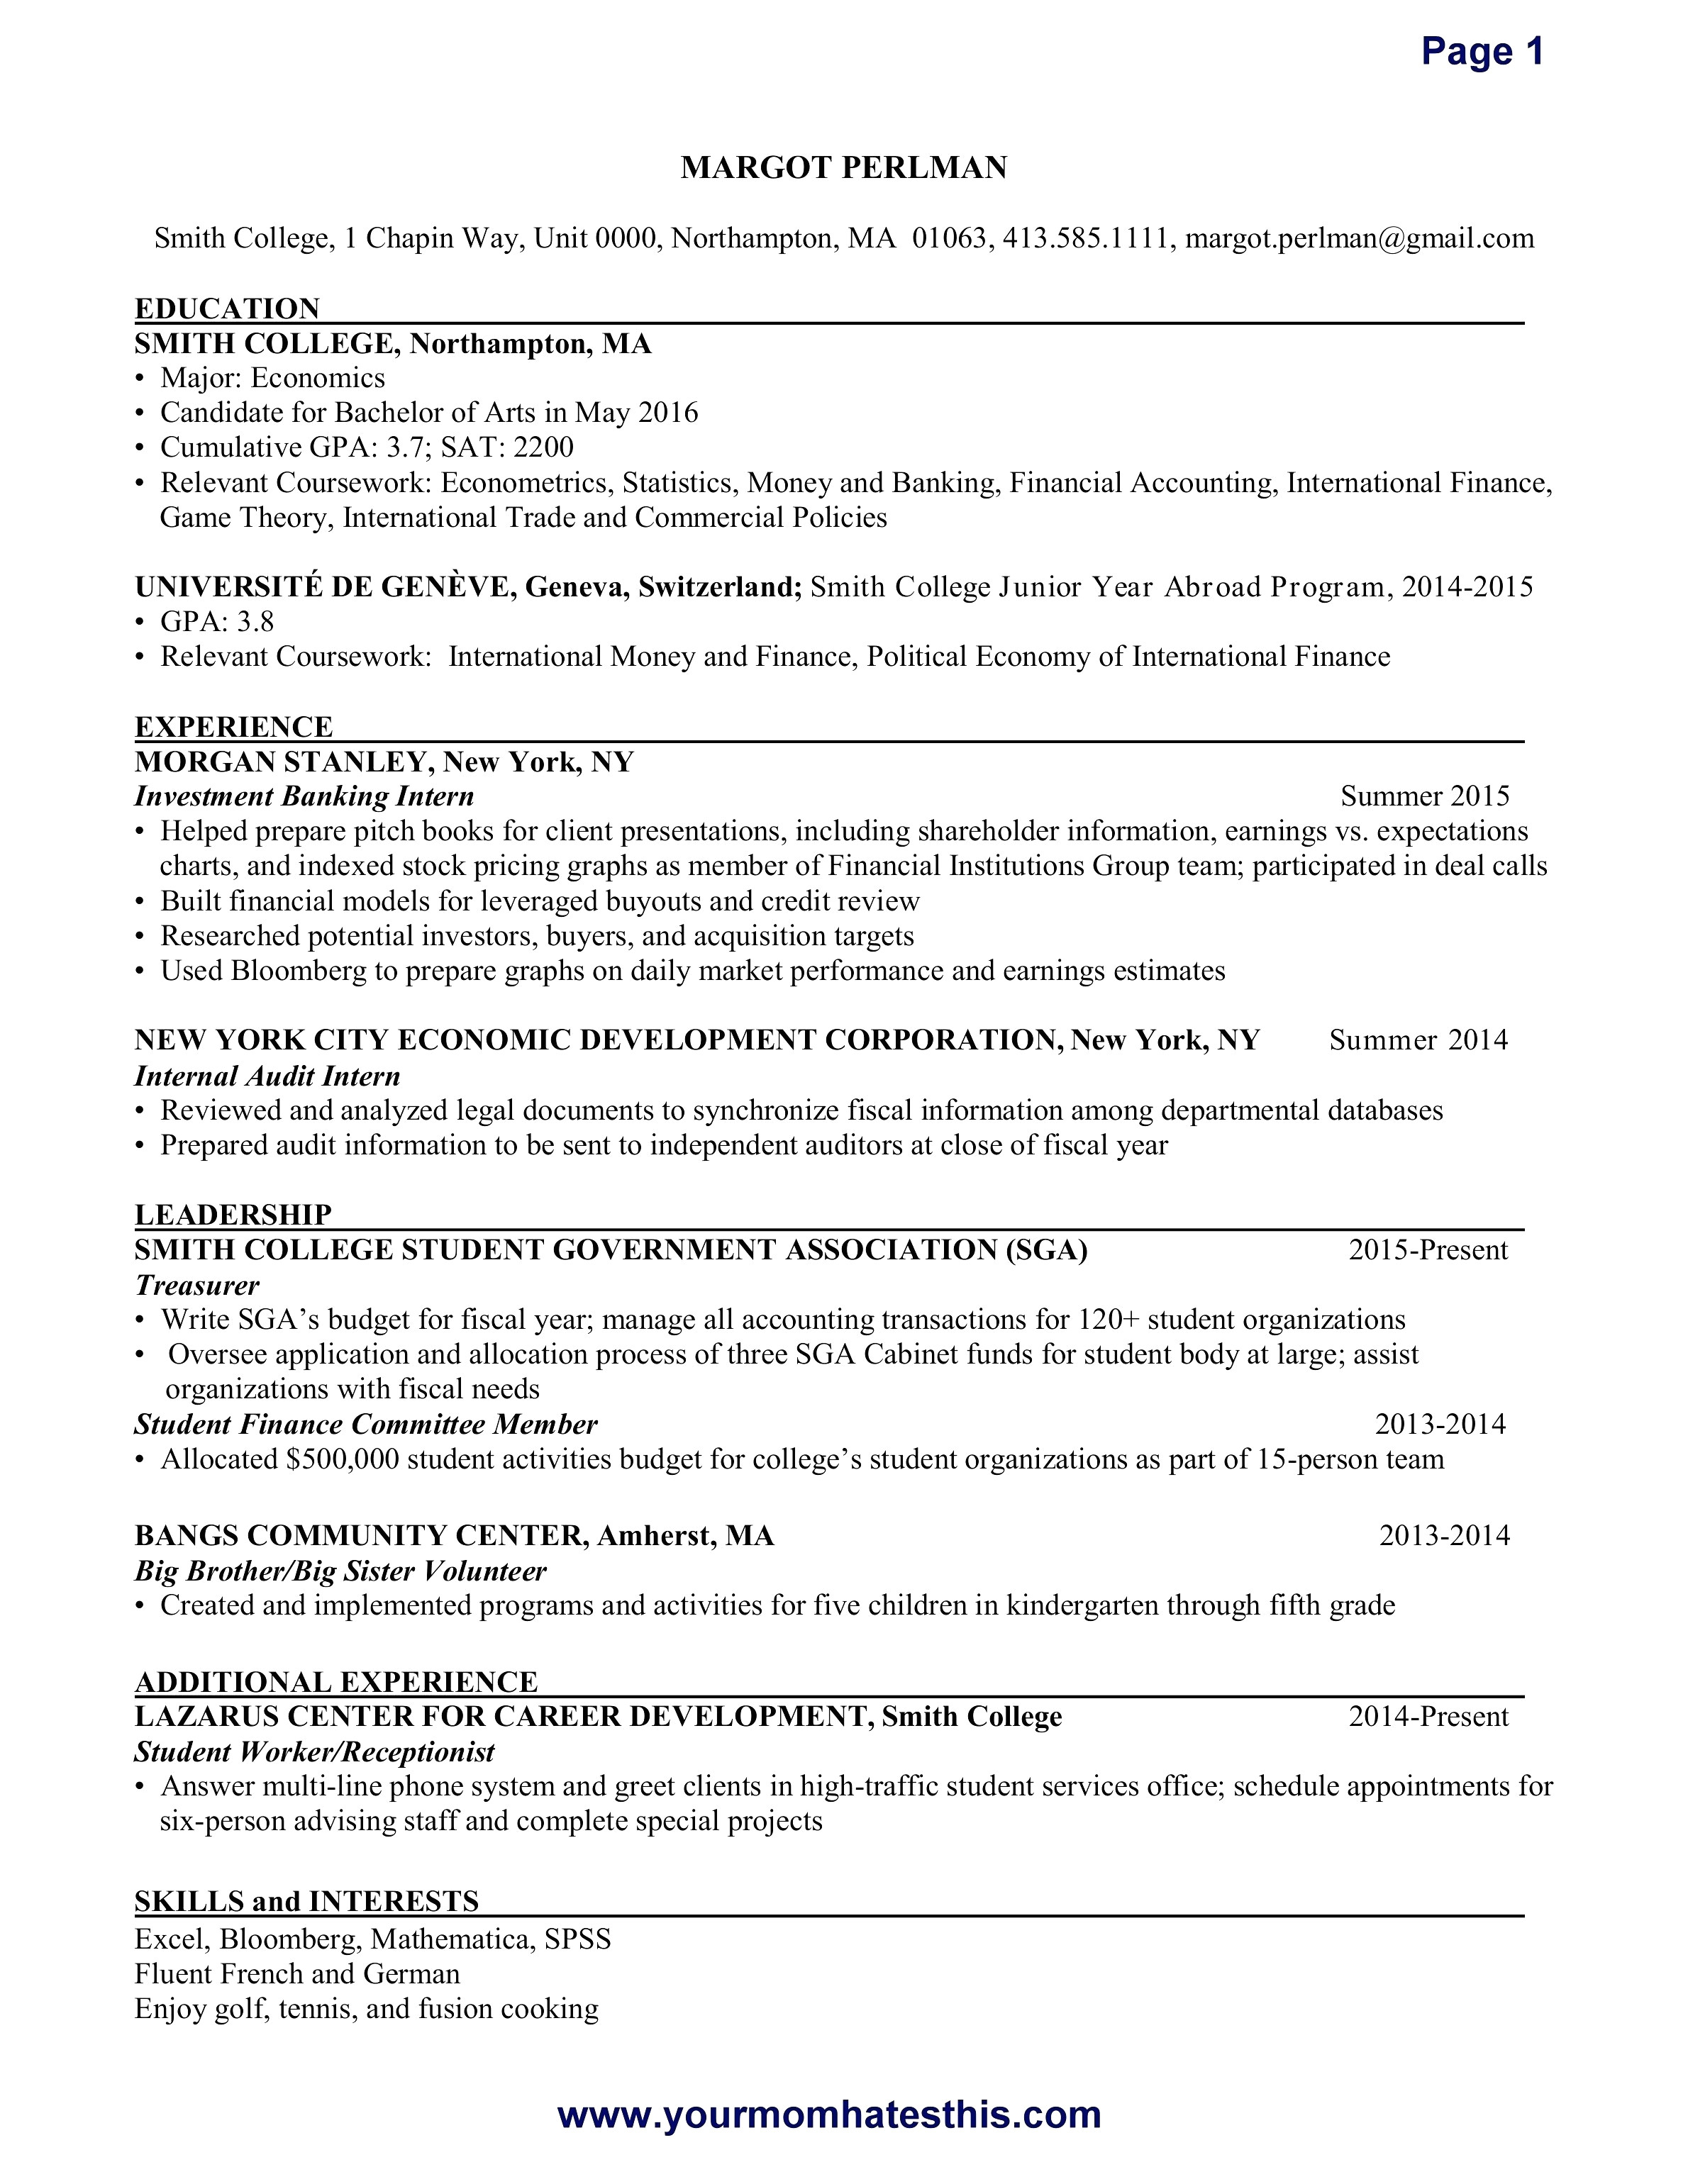 student nurse resume template free Collection-Best Pr Resume Template Elegant Dictionary Template 0d Archives Free Free Resume Templates Luxury 4-t